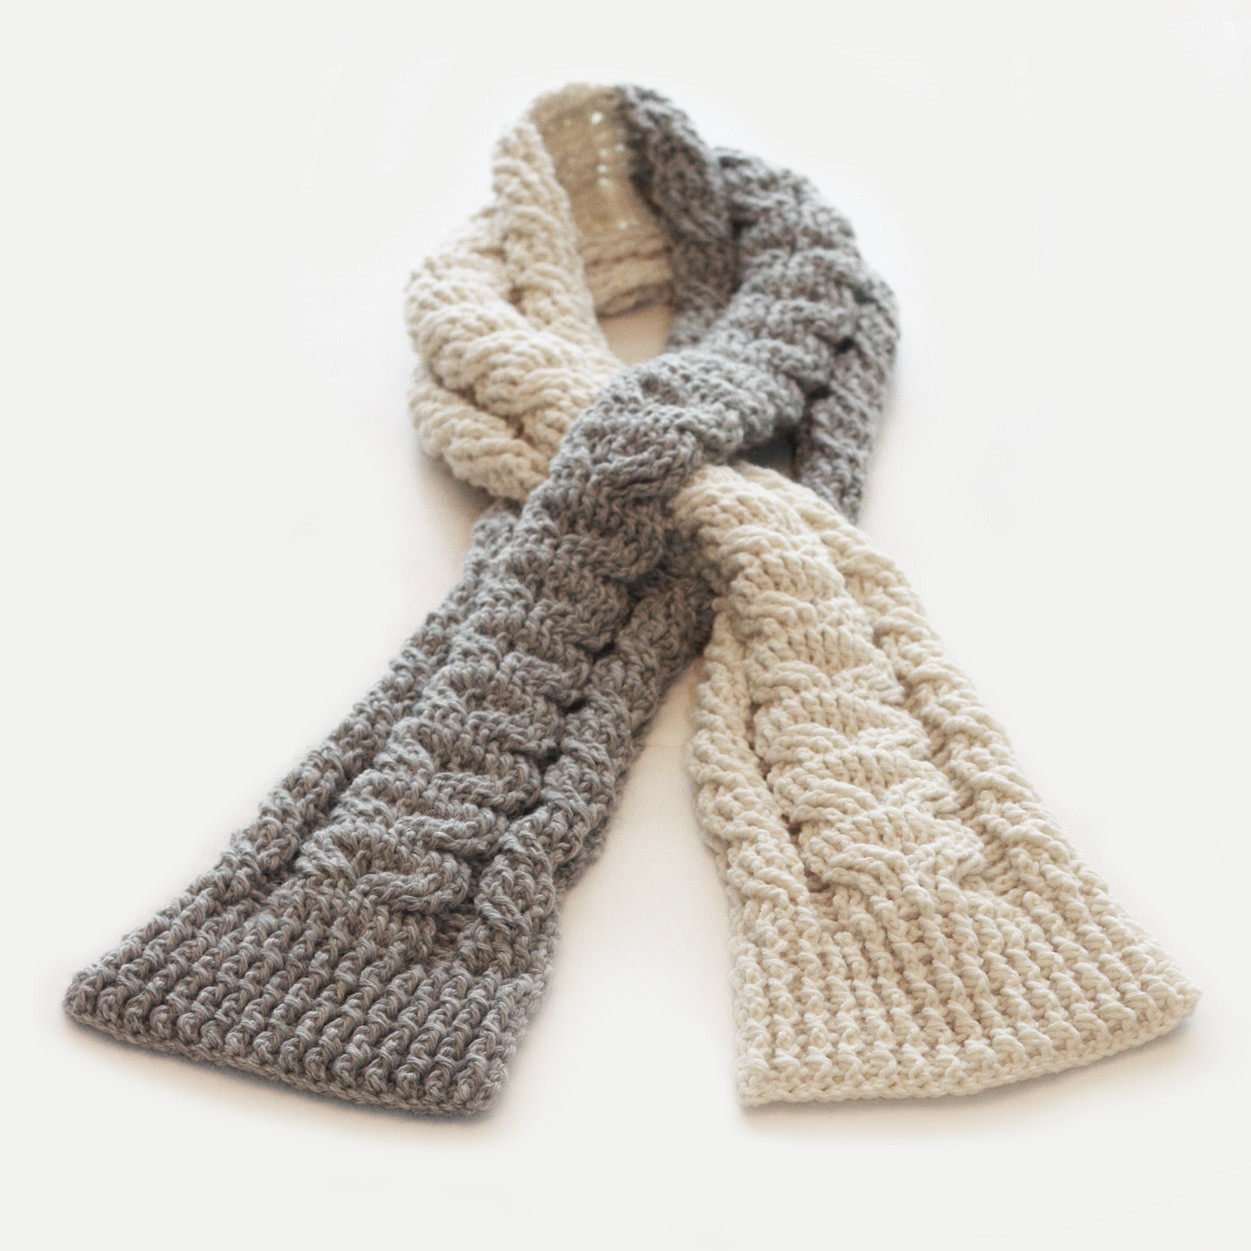 Crochet Cable Scarf Lovely Knot•sew•cute Design Shop New Crochet Pattern Cabled Of Incredible 40 Photos Crochet Cable Scarf